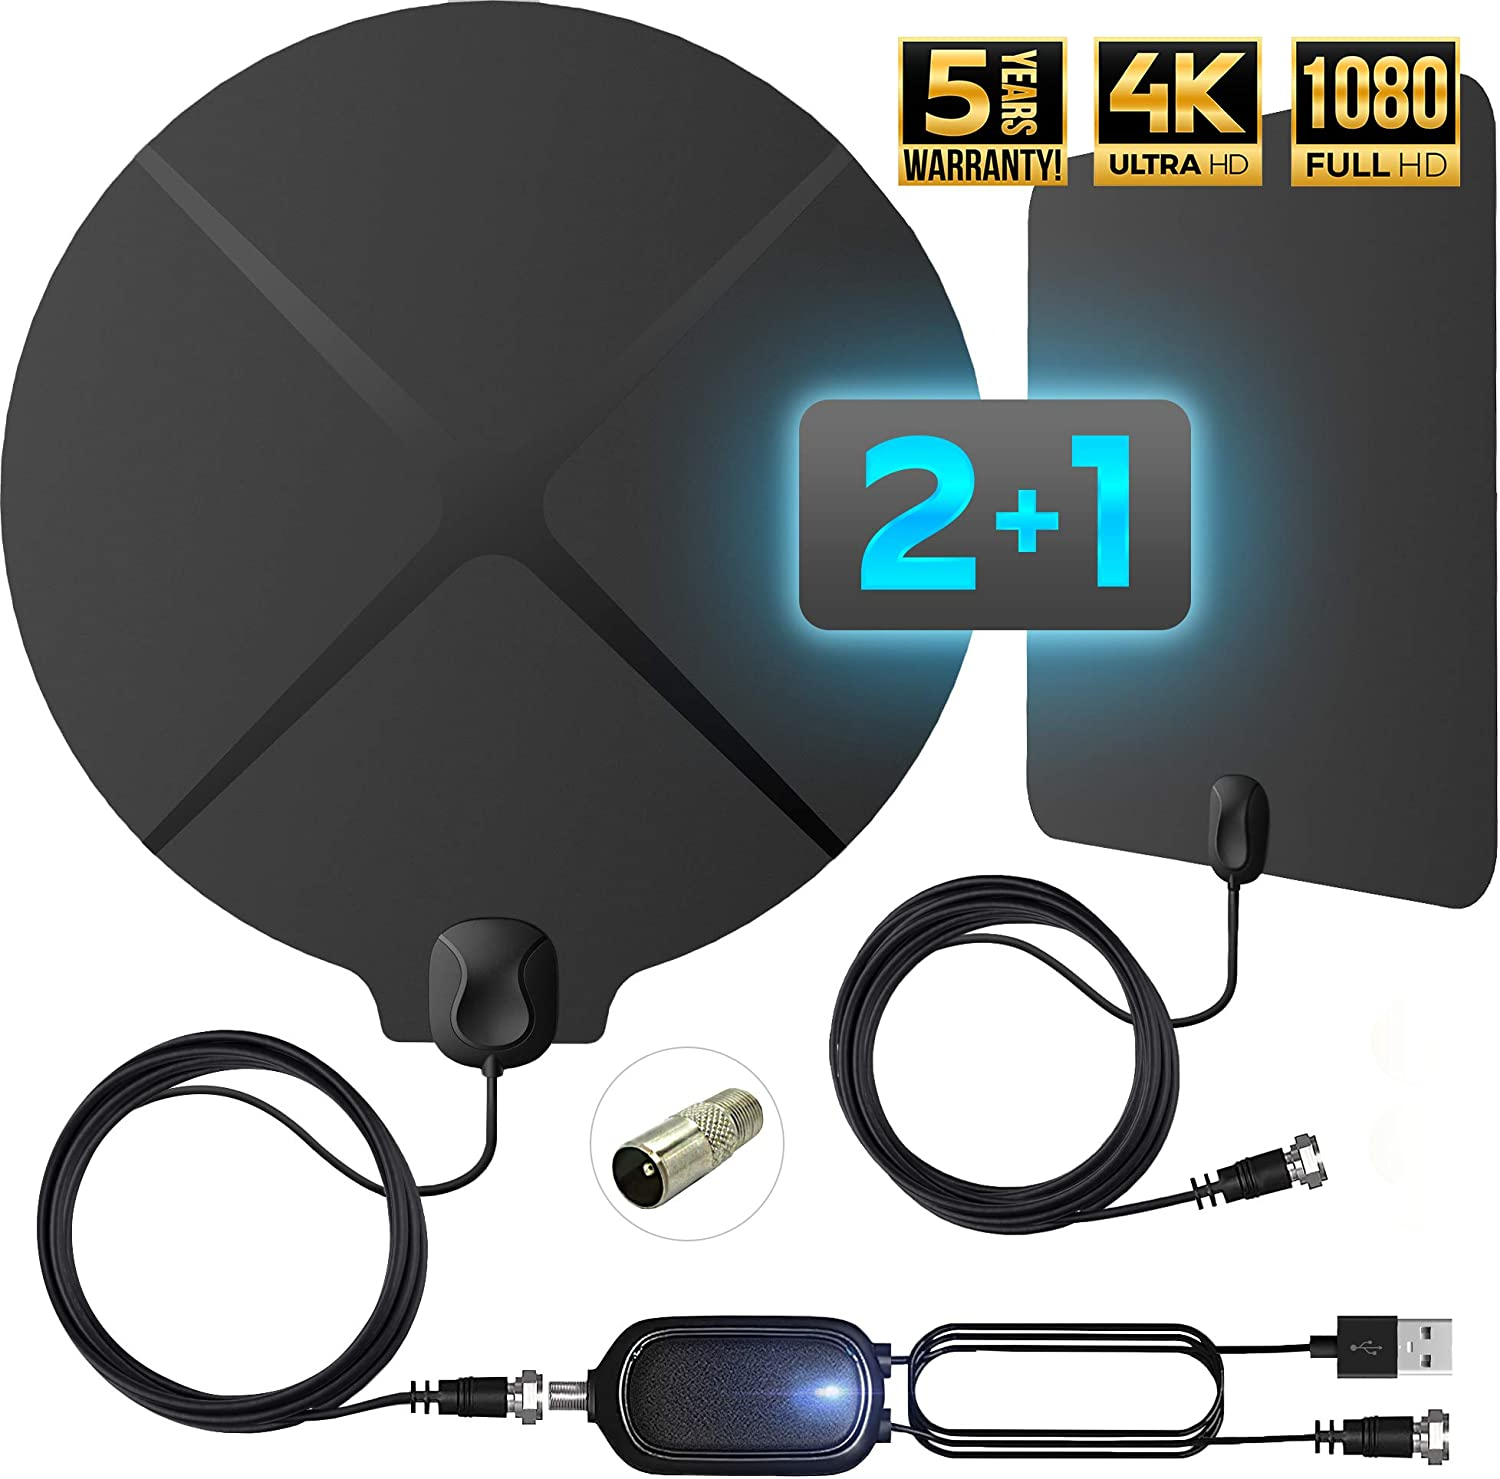 Digital TV Antenna Indoor Amplified - Support 4K 1080p 65-120 Miles Range - HD Antenna for TV - Freeview Local HDTV Channels with Amplifier Signal Booster 4K [2020 Version]